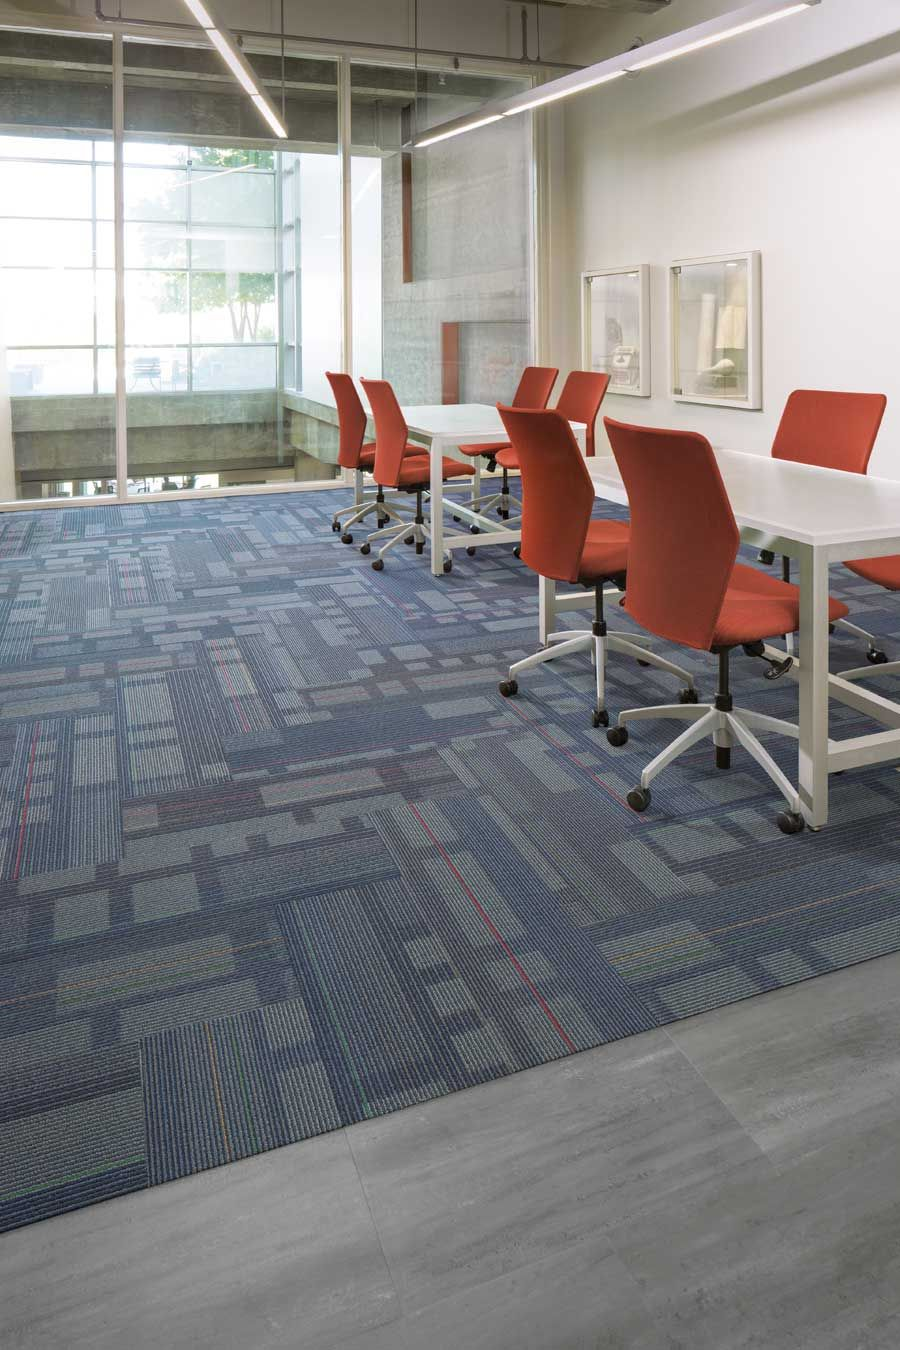 Mix And Match Tile 12by36 Bigelow Commercial Modular Carpet Modular Carpet Commercial Flooring Carpet Tiles